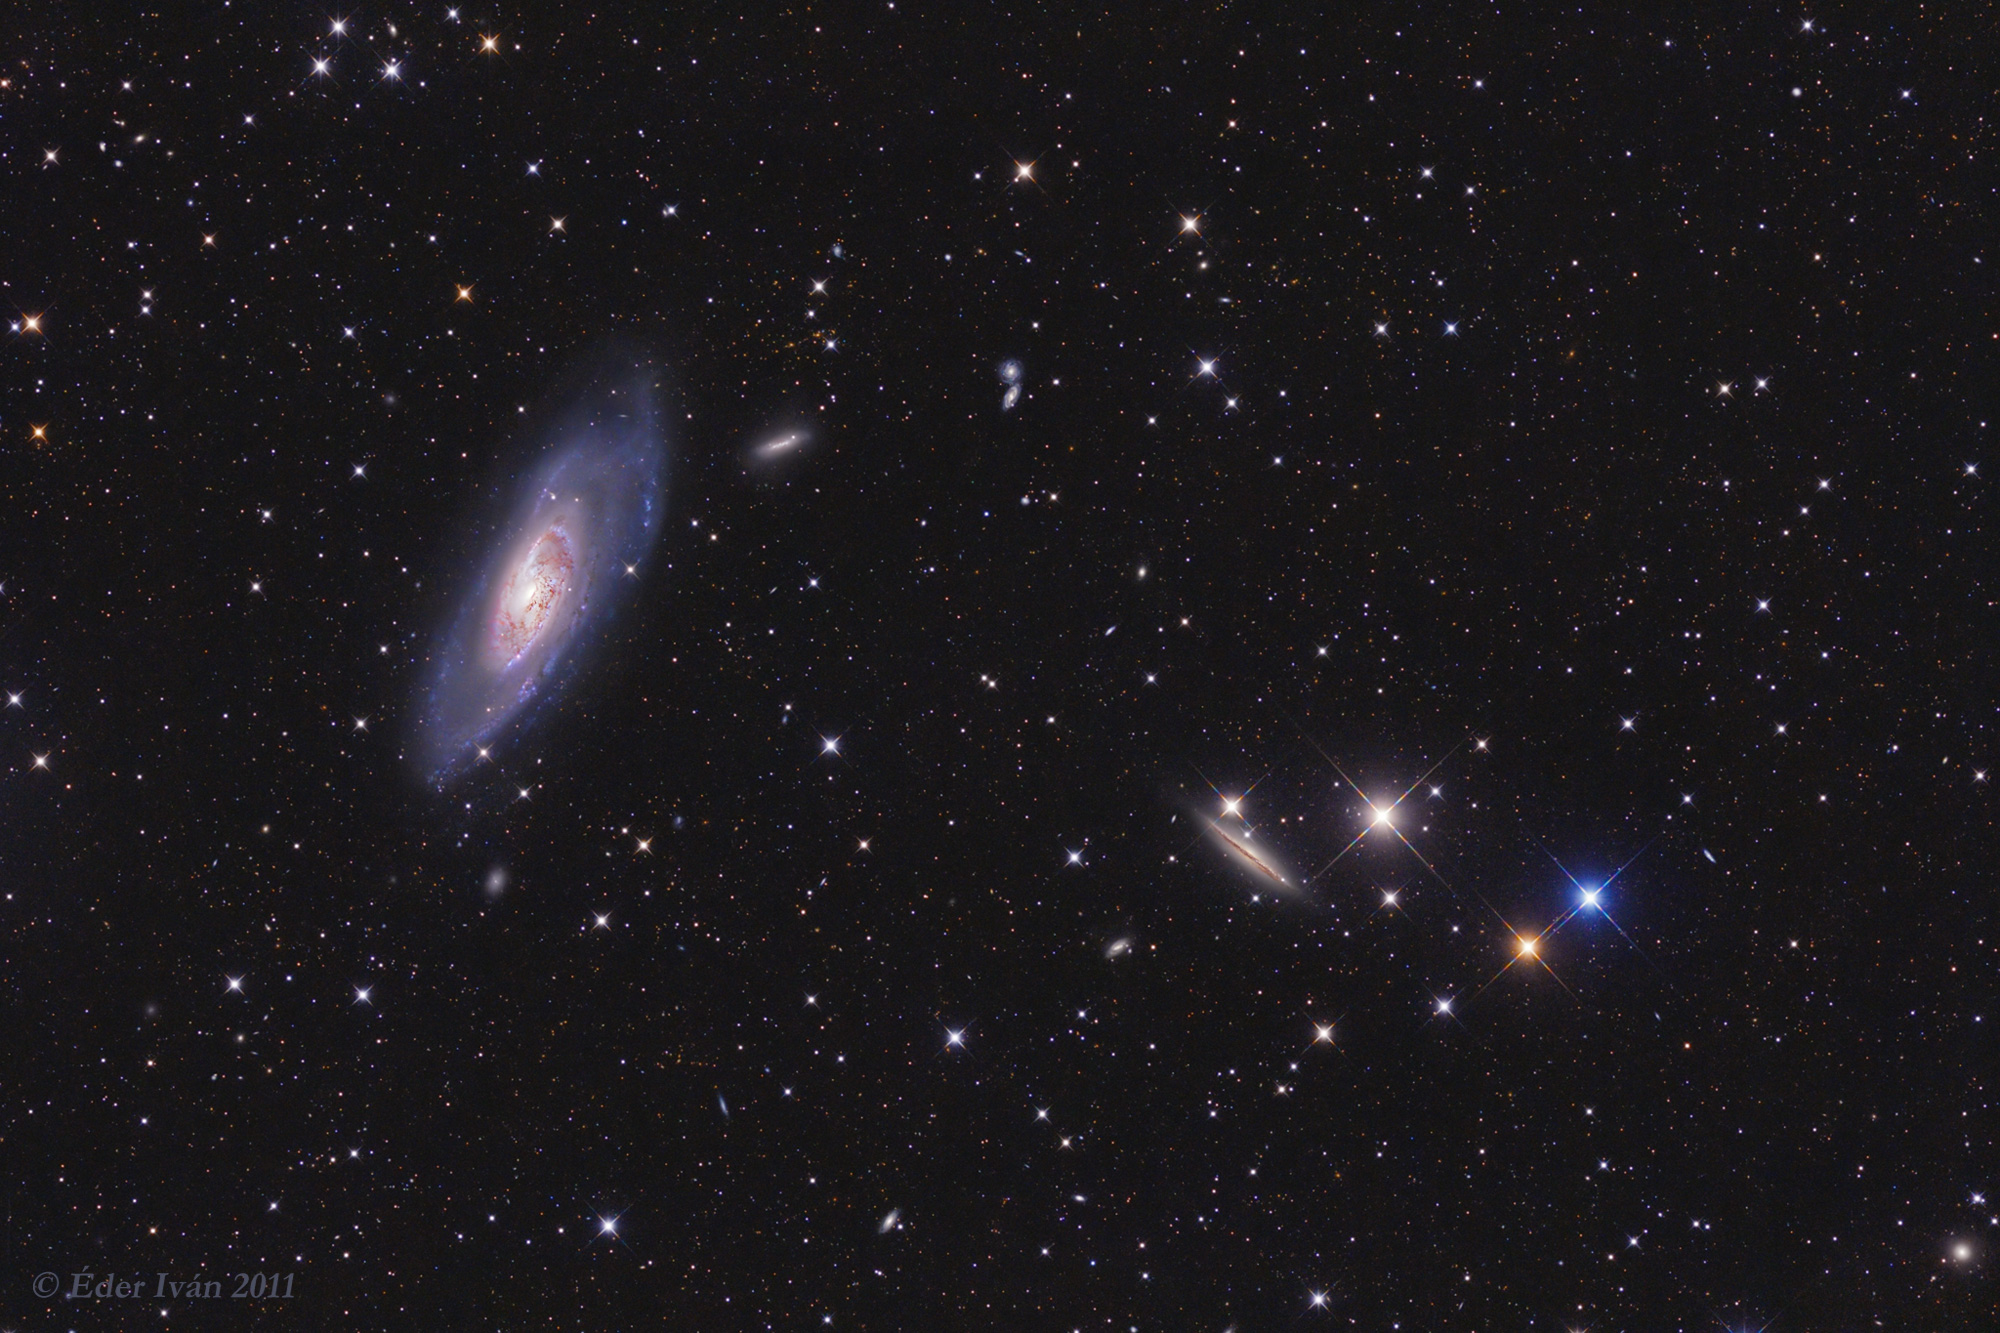 M 106 galaxy and its neighbours